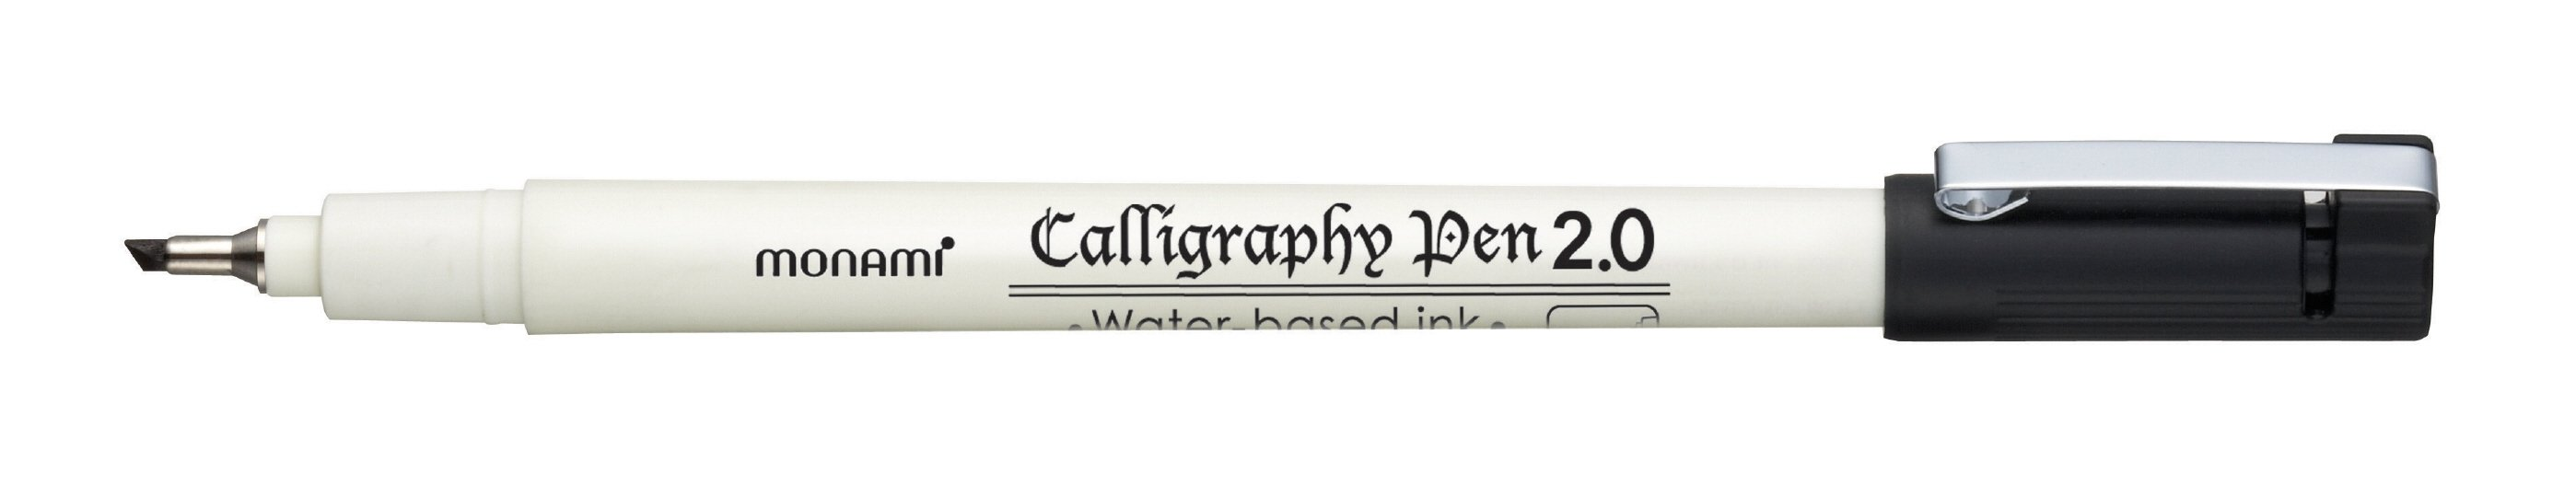 Calligraphy Pen Buy Makers Product On